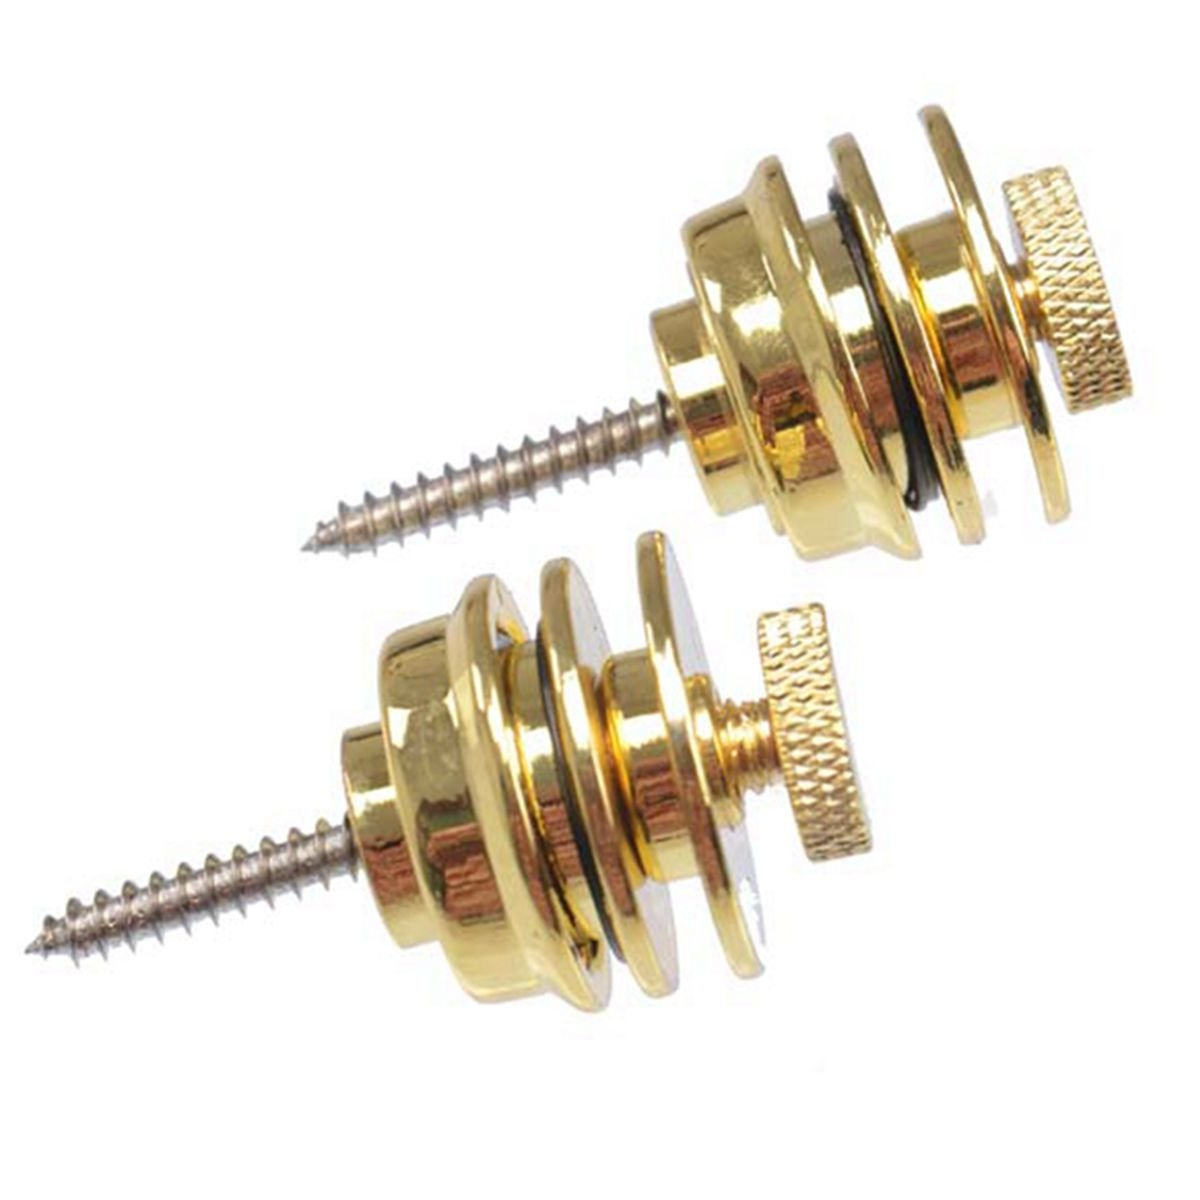 TIANOR 2pcs Guitar Strap Lock Buttons- Security Straps locks, High Quality Guitar Tail Nails, Anti-stripping lock system for Guitar and Bass Strap, Golden